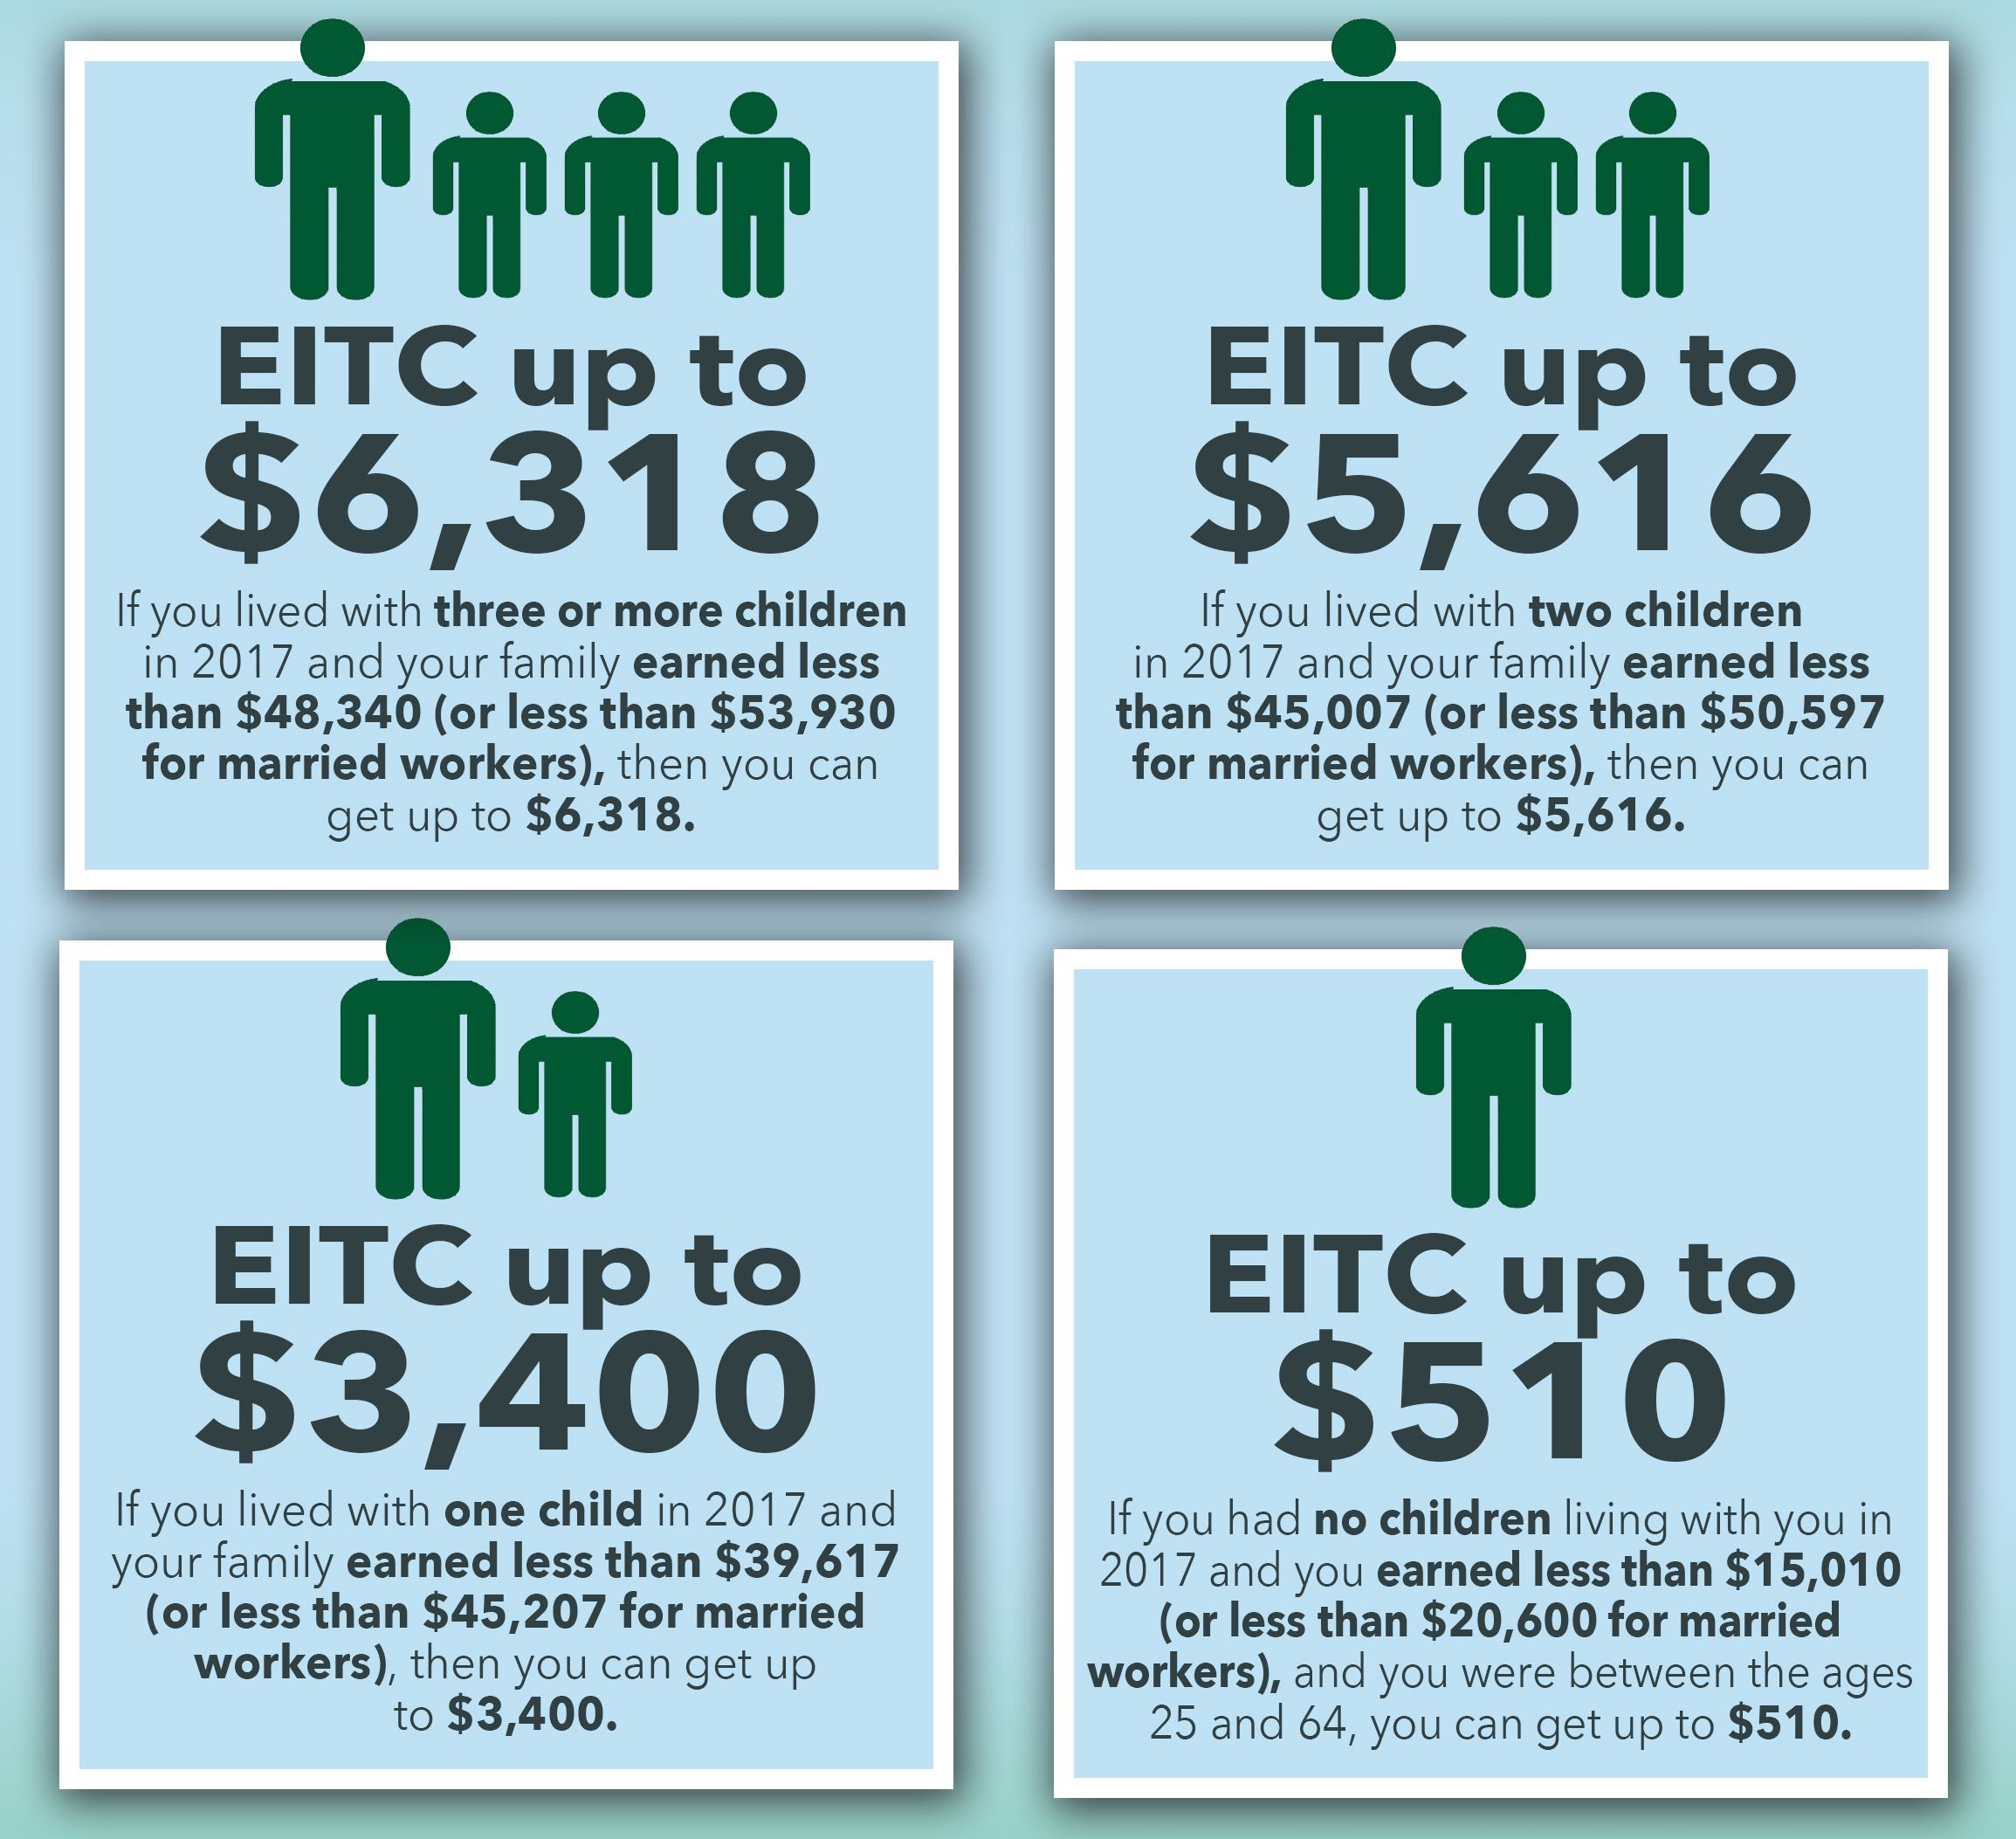 2017-18 EITC Refunds